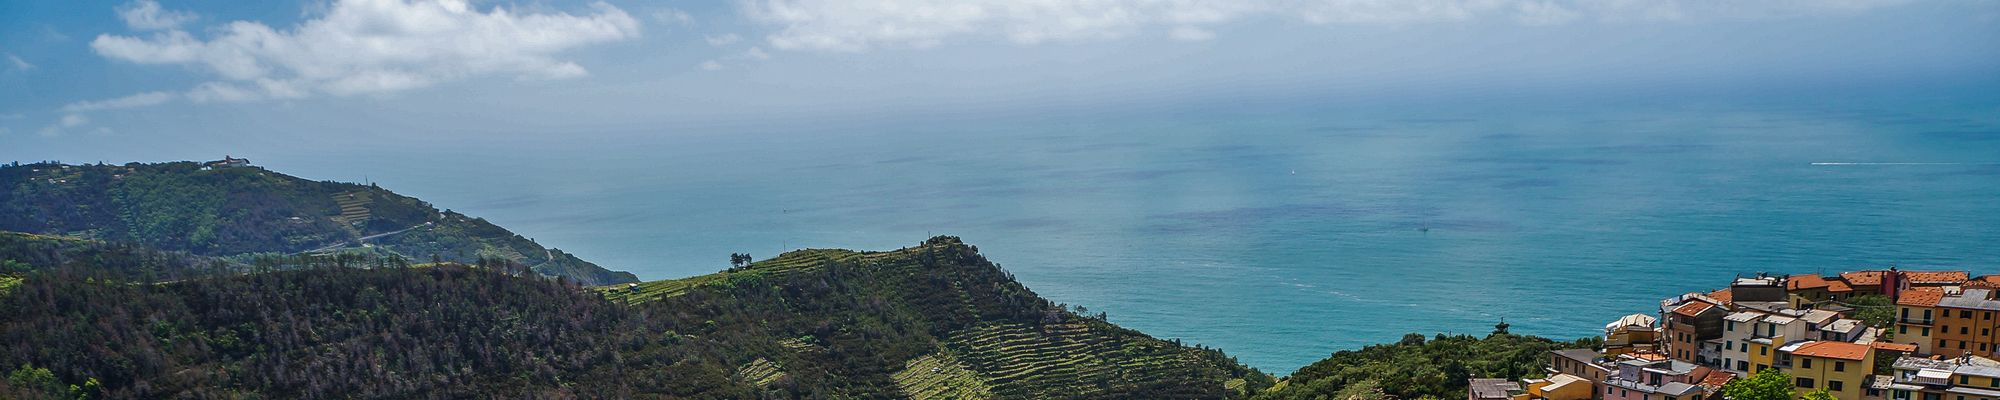 Looking down at Volastra from a terraced vineyard